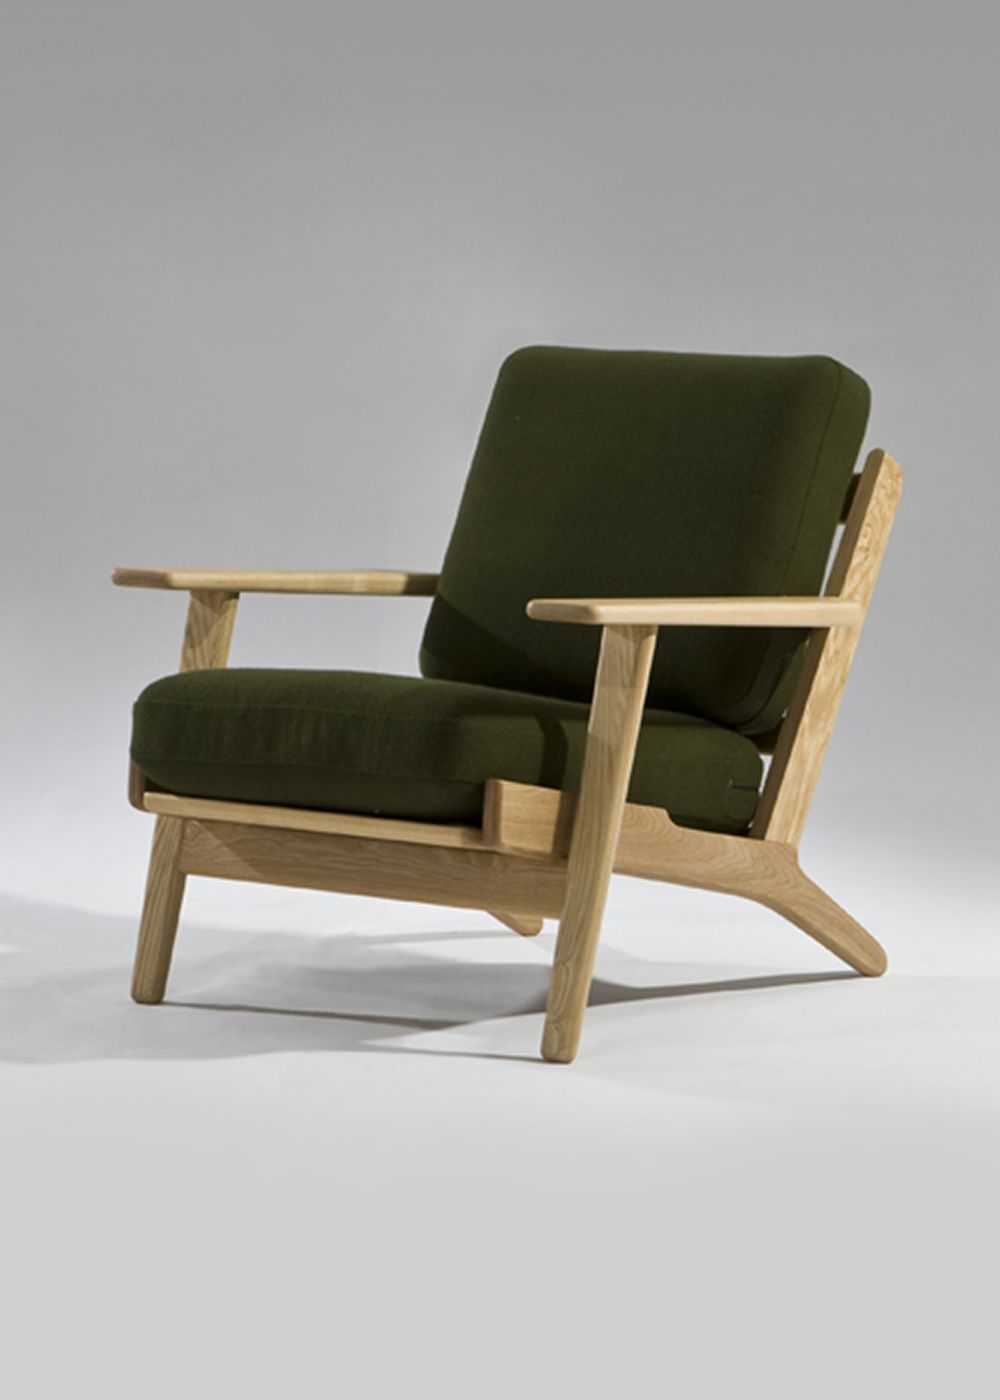 Wooden armchair with cushion - The Lark Lounge Chair Has A Solid Wood Frame With Spring And Foam Upholstered Cushions